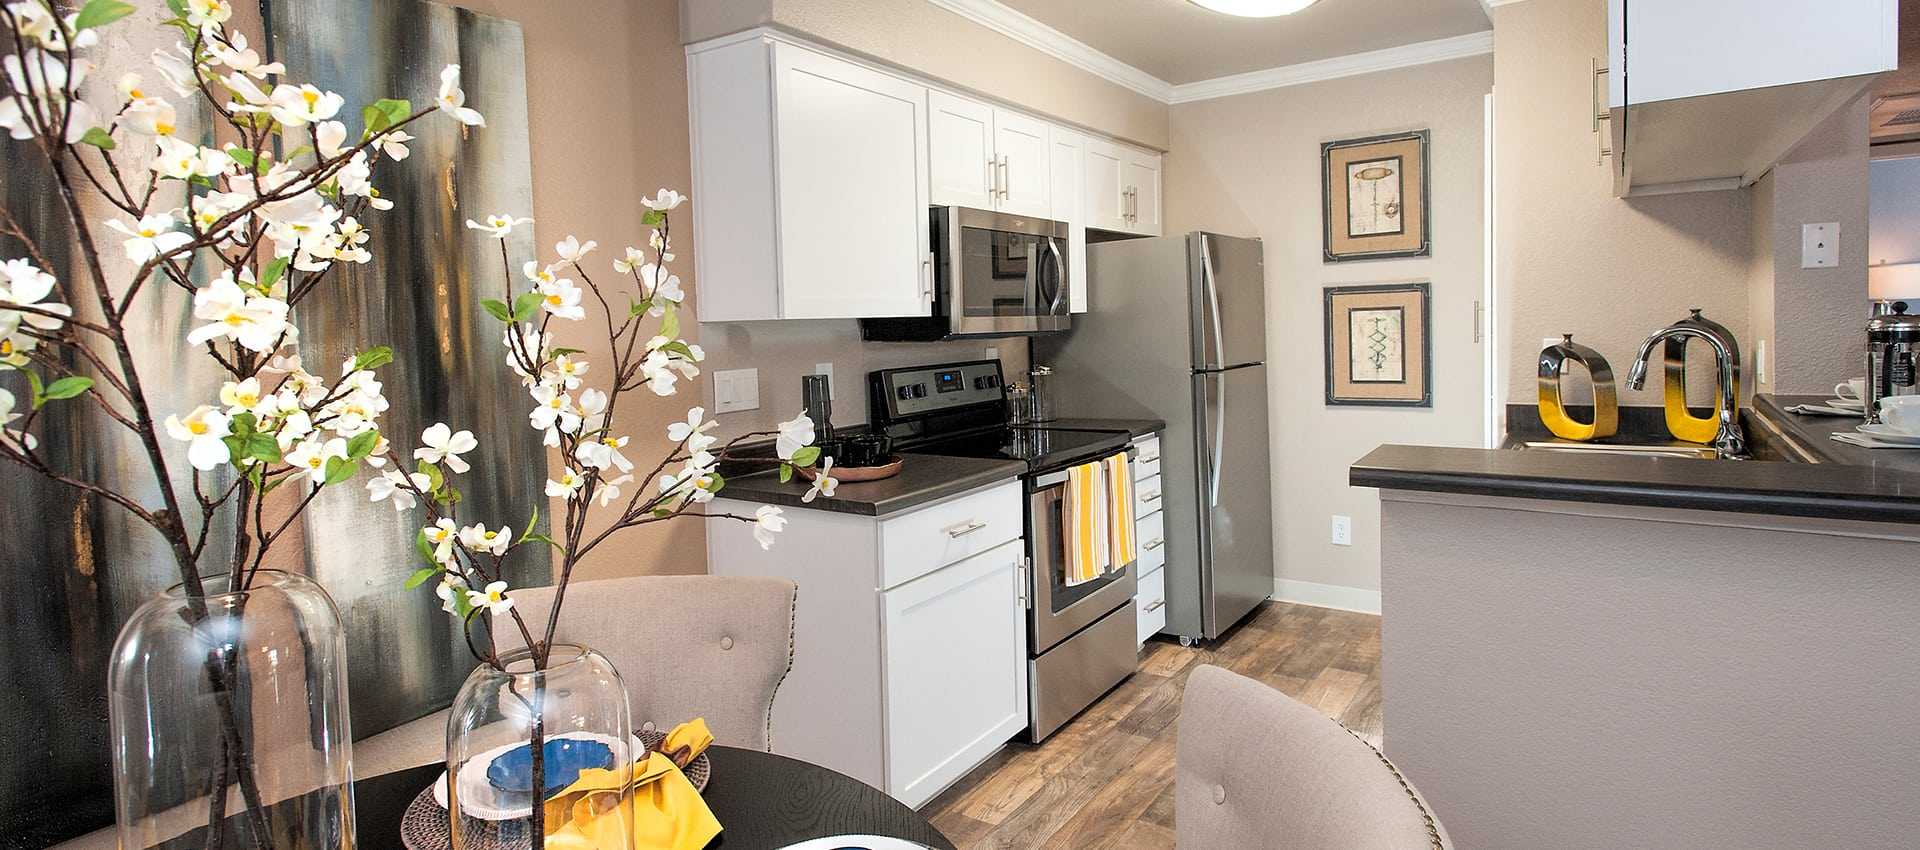 Kitchen at Reserve at Capital Center Apartment Homes in Rancho Cordova, CA